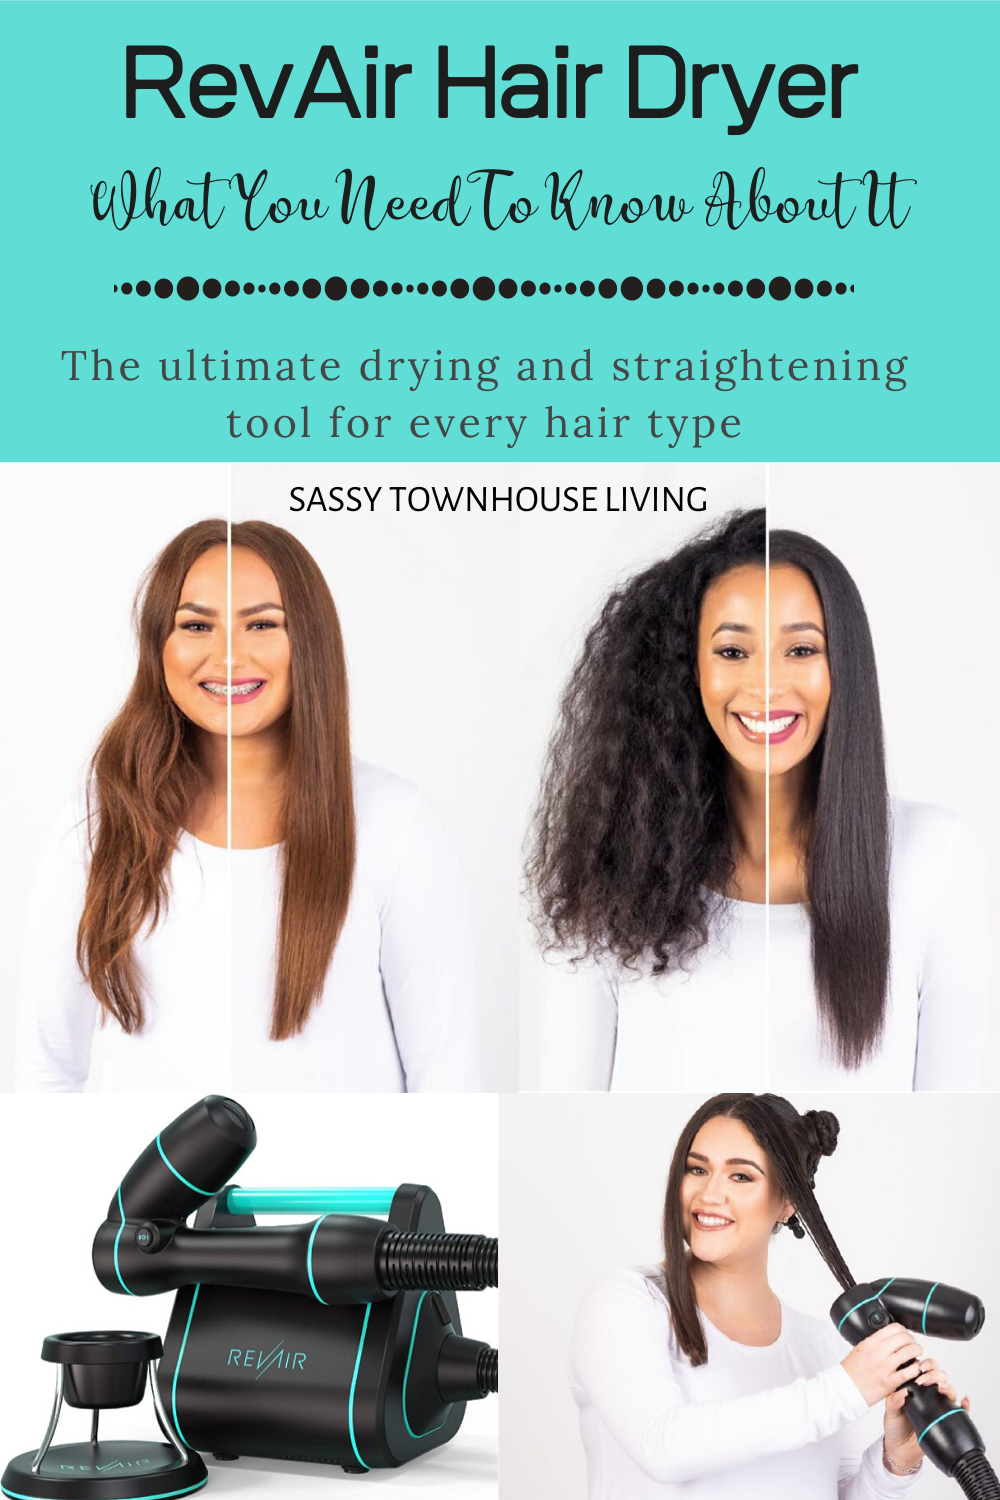 RevAir Hair Dryer What You Need To Know About It Sassy